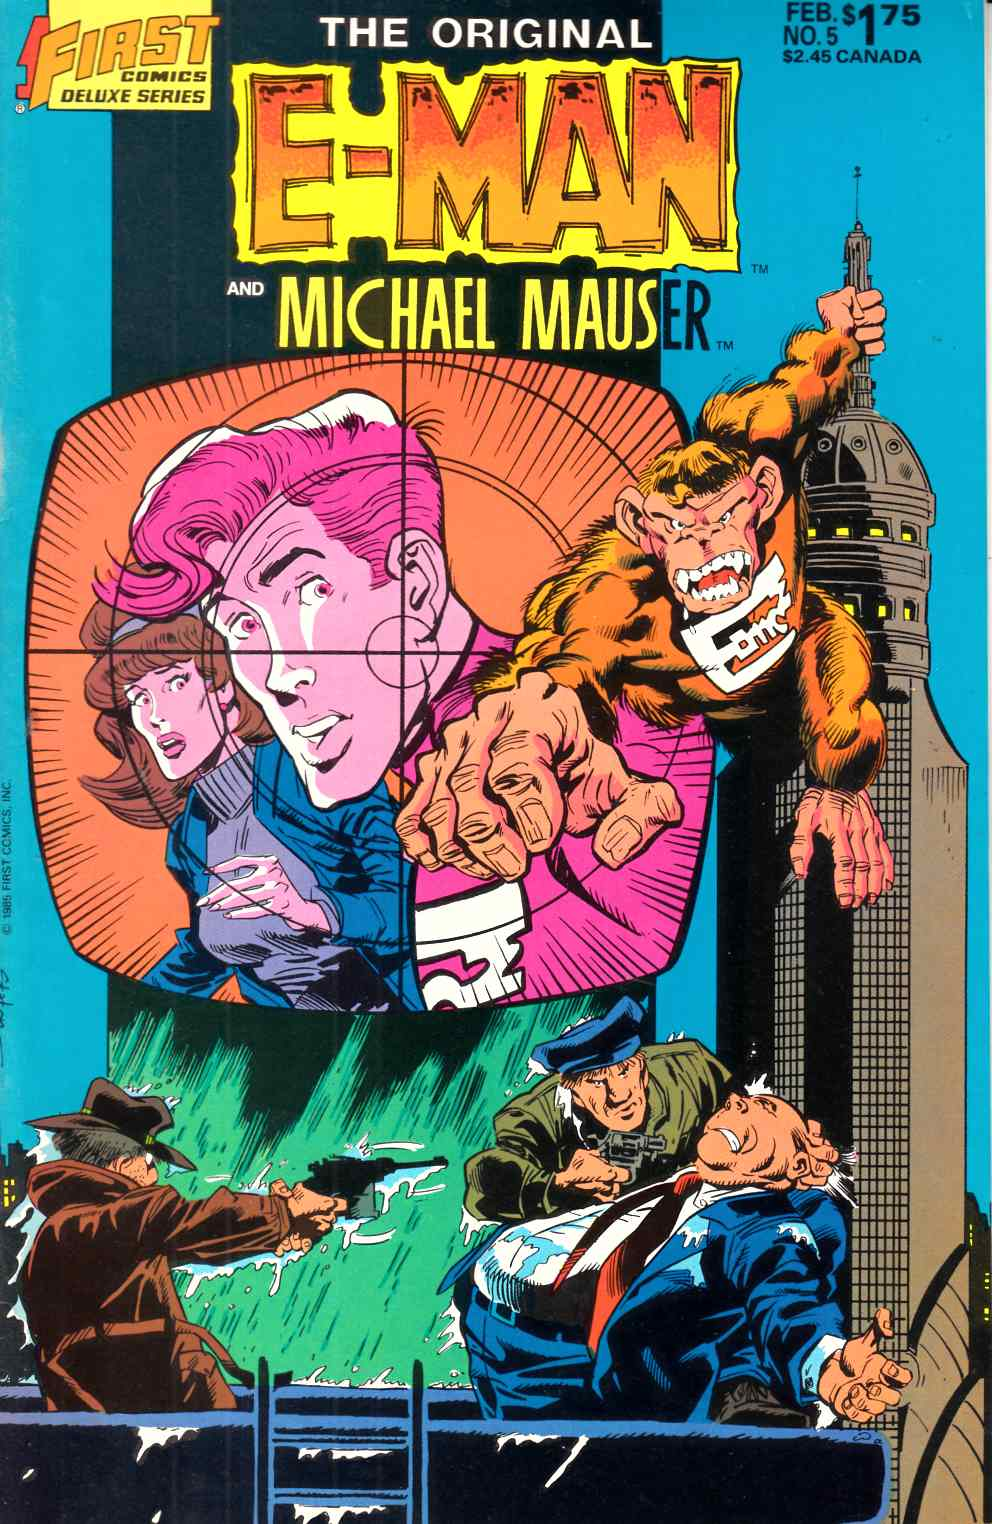 Original E-Man and Michael Mauser #5 Very Fine (8.0) [First Comic] THUMBNAIL